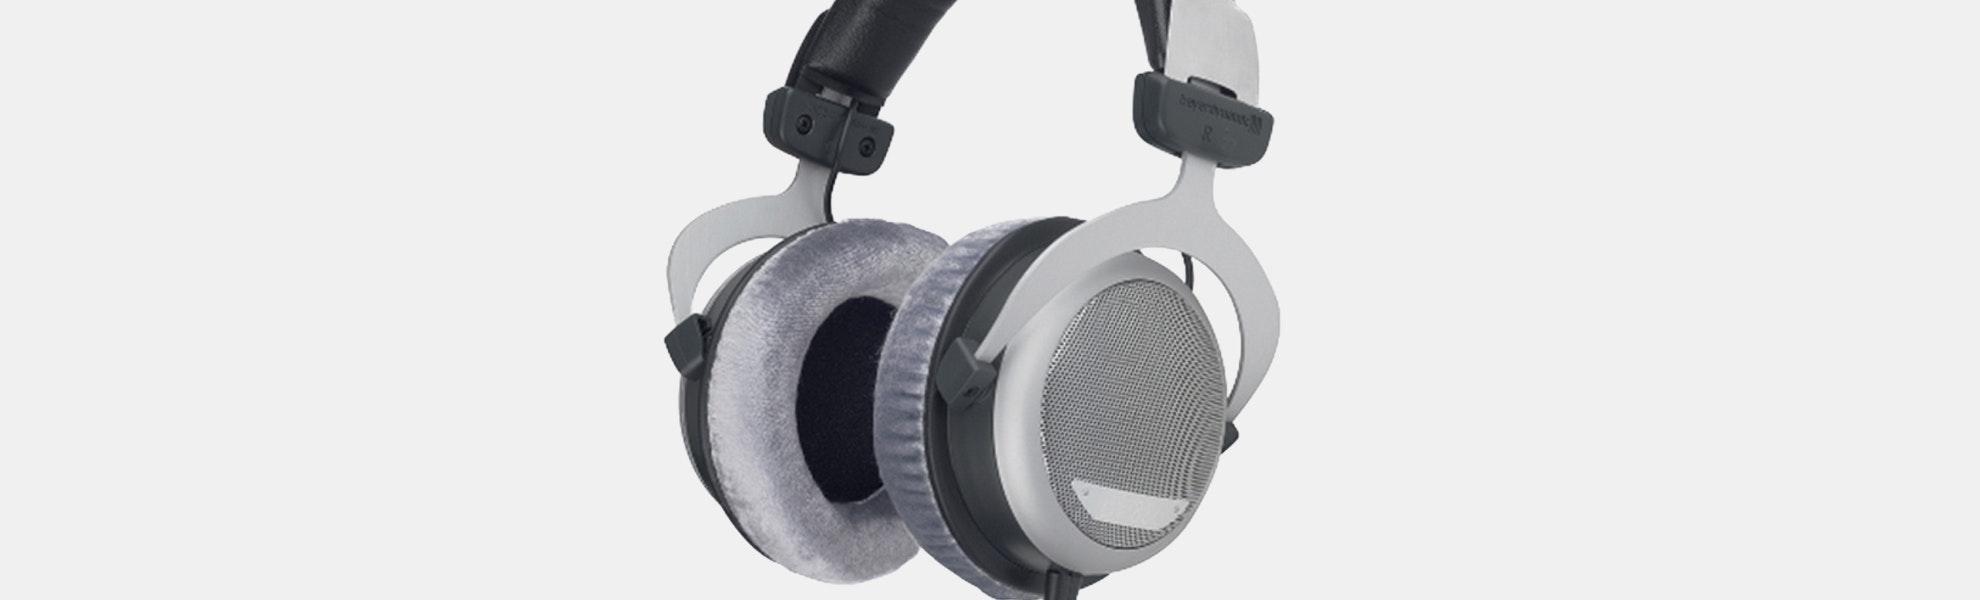 Beyerdynamic DT880 600-Ohm Headphones